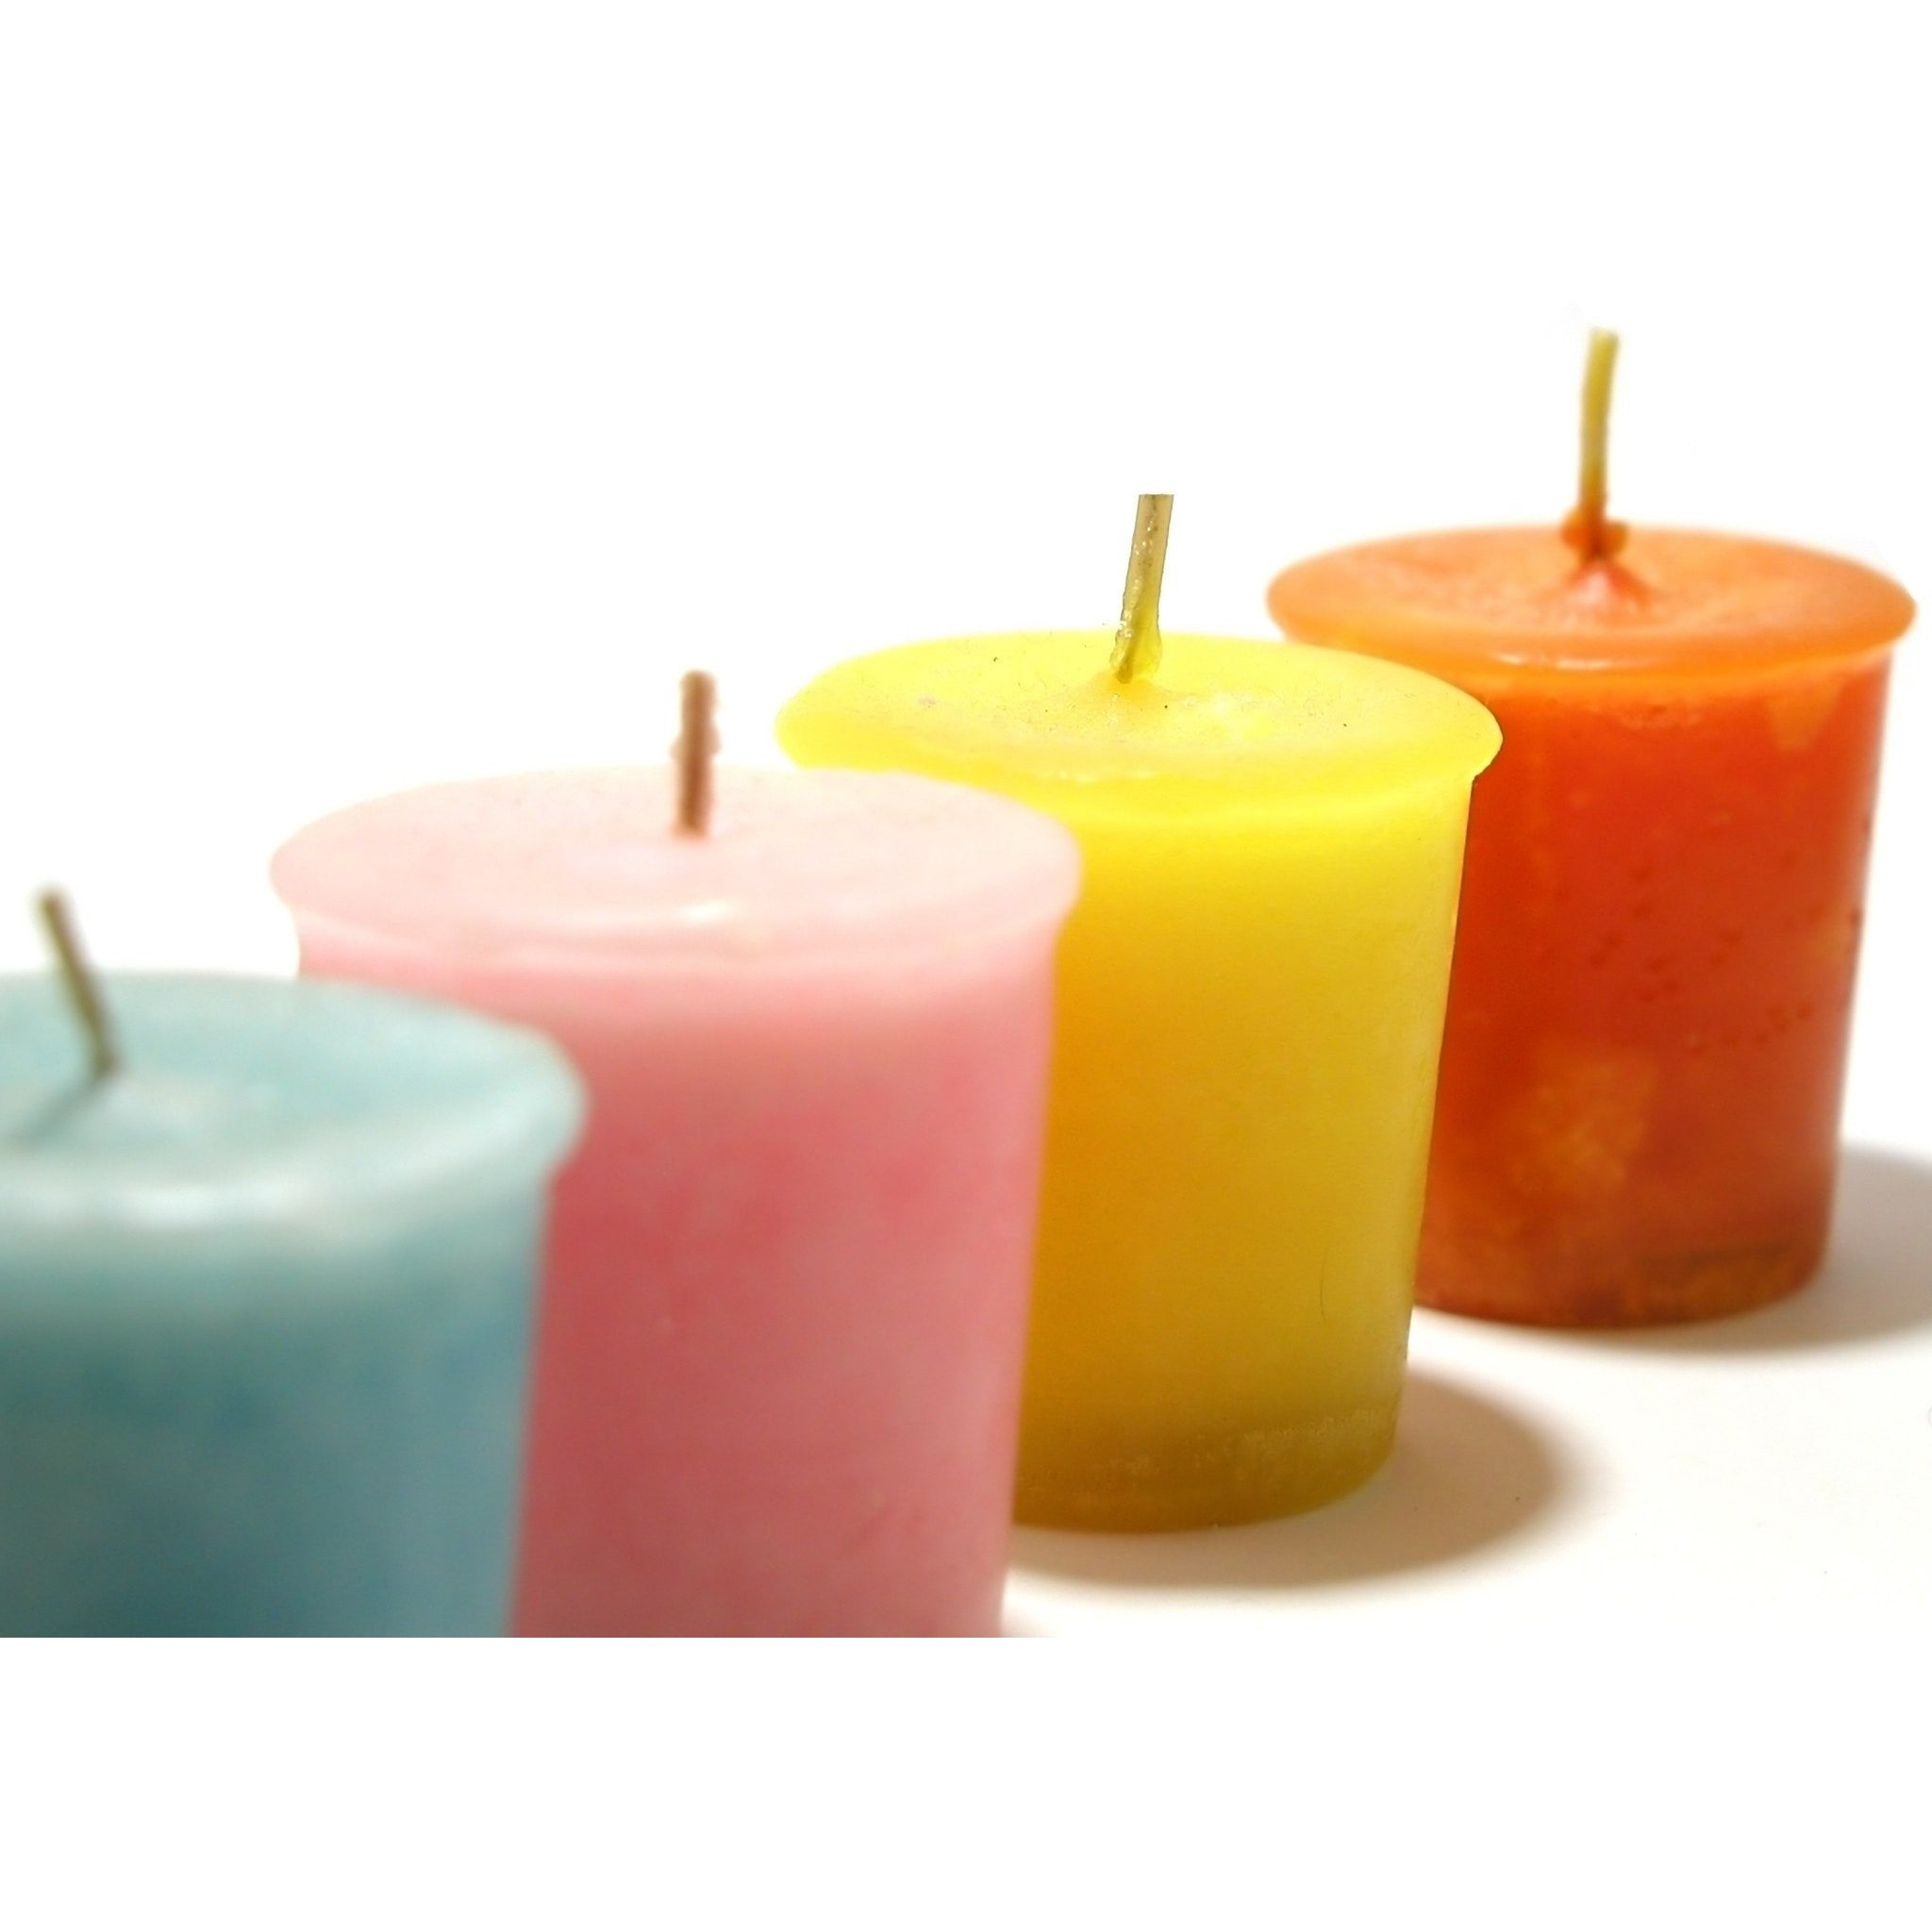 Bella Ocean-Breeze Natural Hand Poured Soy Candles - Votive-Single - Bella-Mia Naturals All Natural Soy Candles & Lip Balms - 7